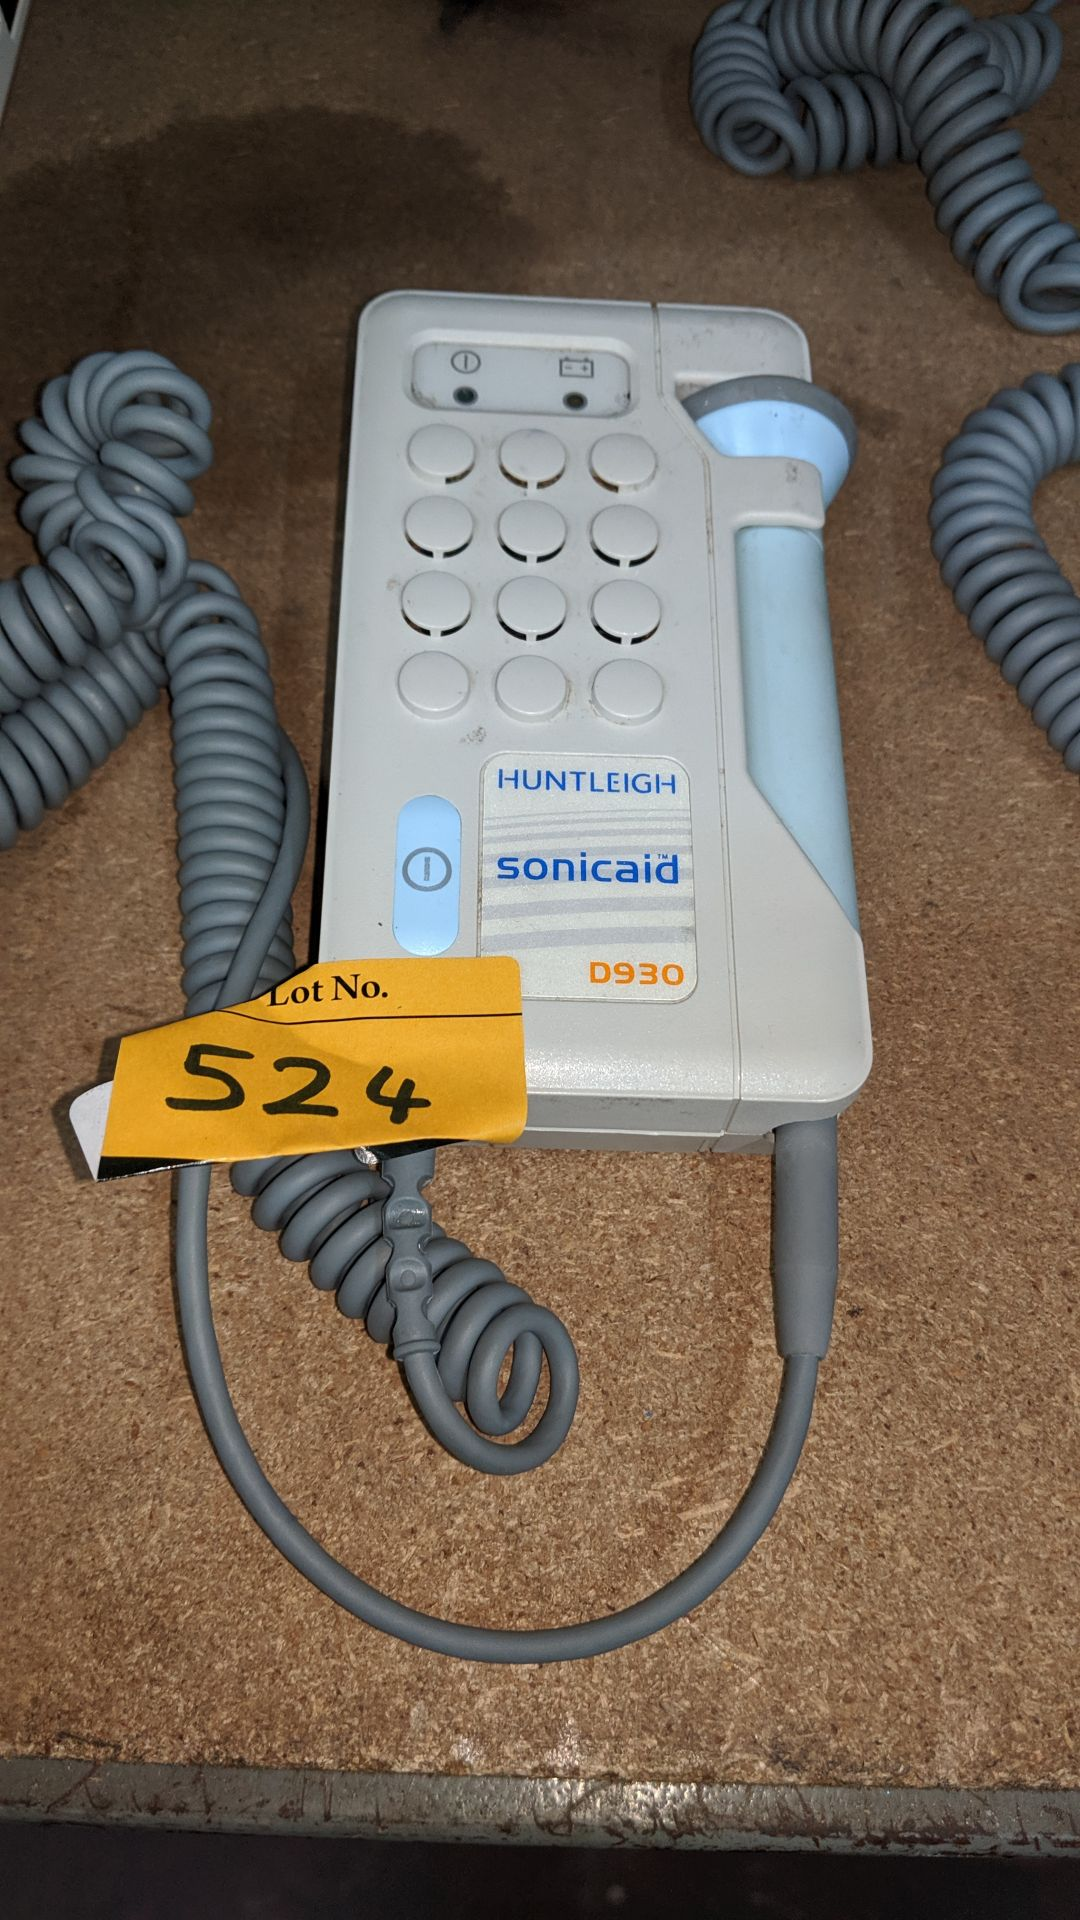 Lot 524 - Huntleigh Sonicaid model D930 Fetal Doppler . This is one of a large number of lots used/owned by